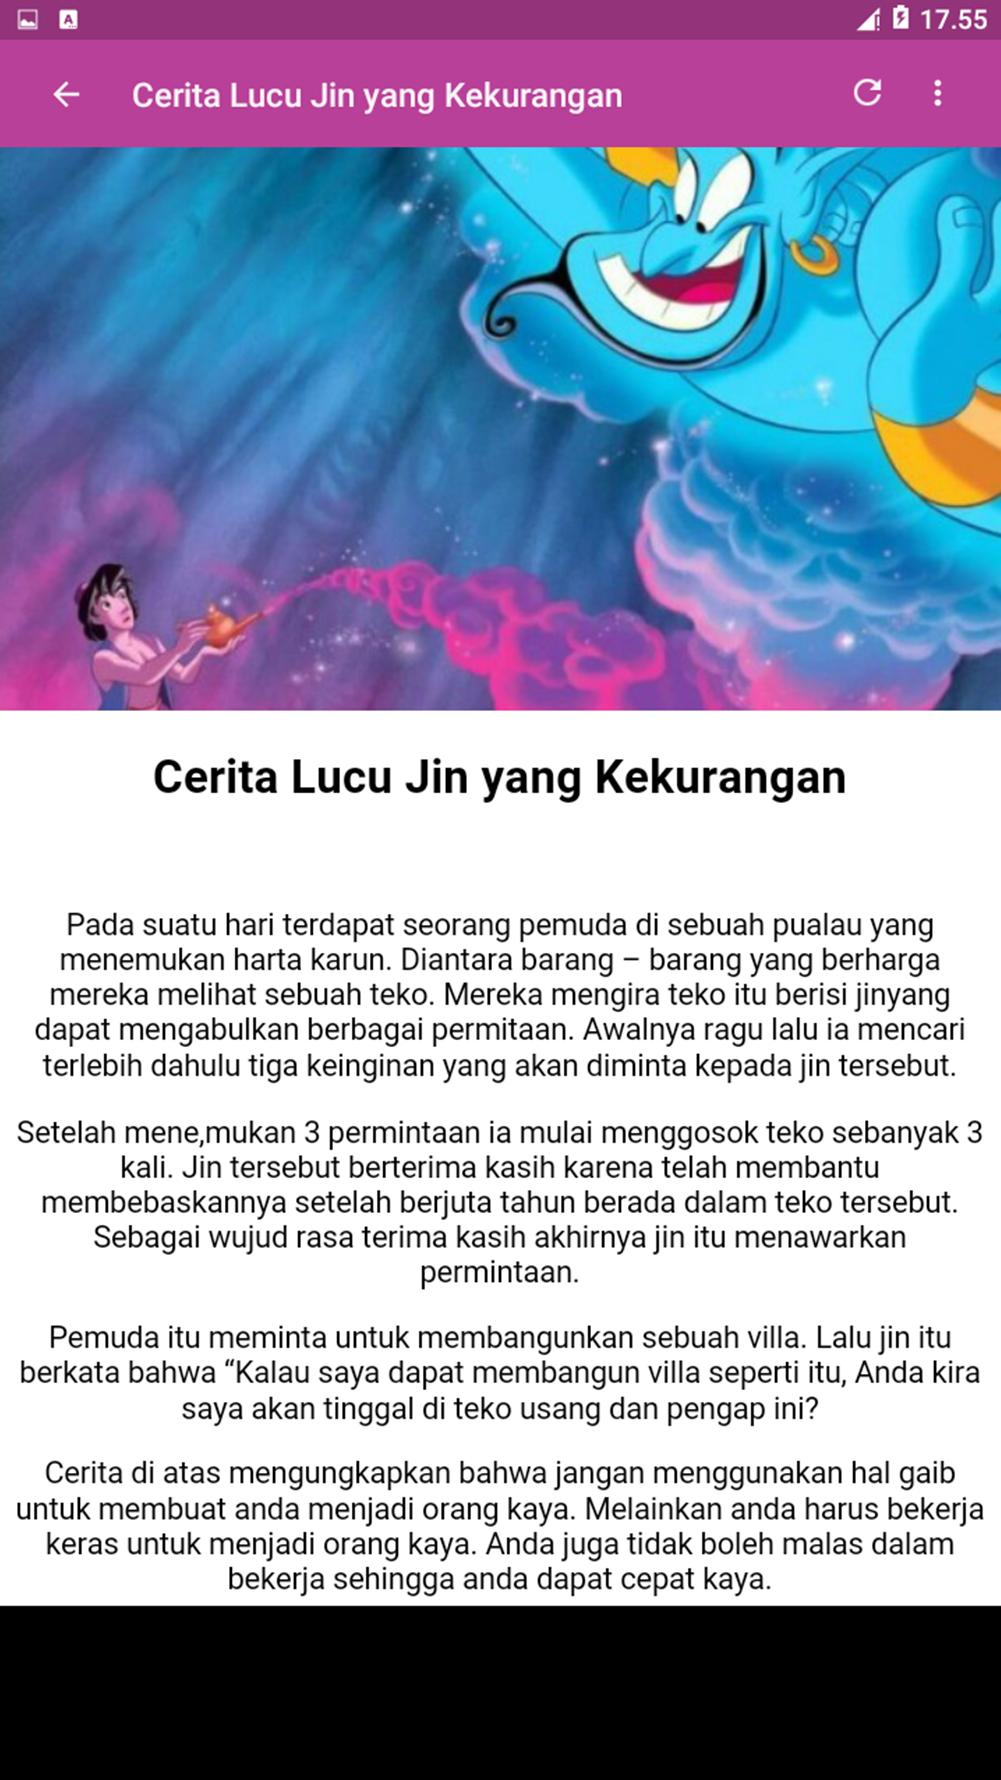 100 Cerita Lucu Bikin Ngakak 2019 For Android APK Download